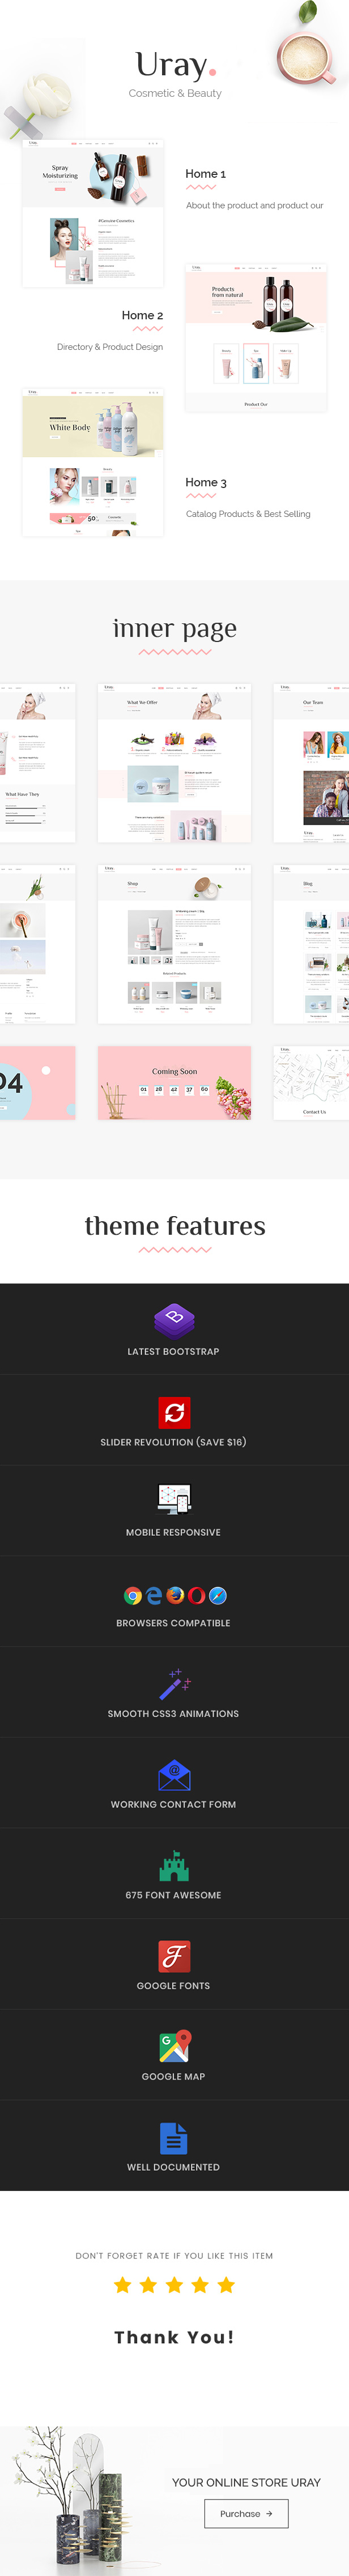 Uray - Cosmetic & Beauty Shop HTML5 Template - 1